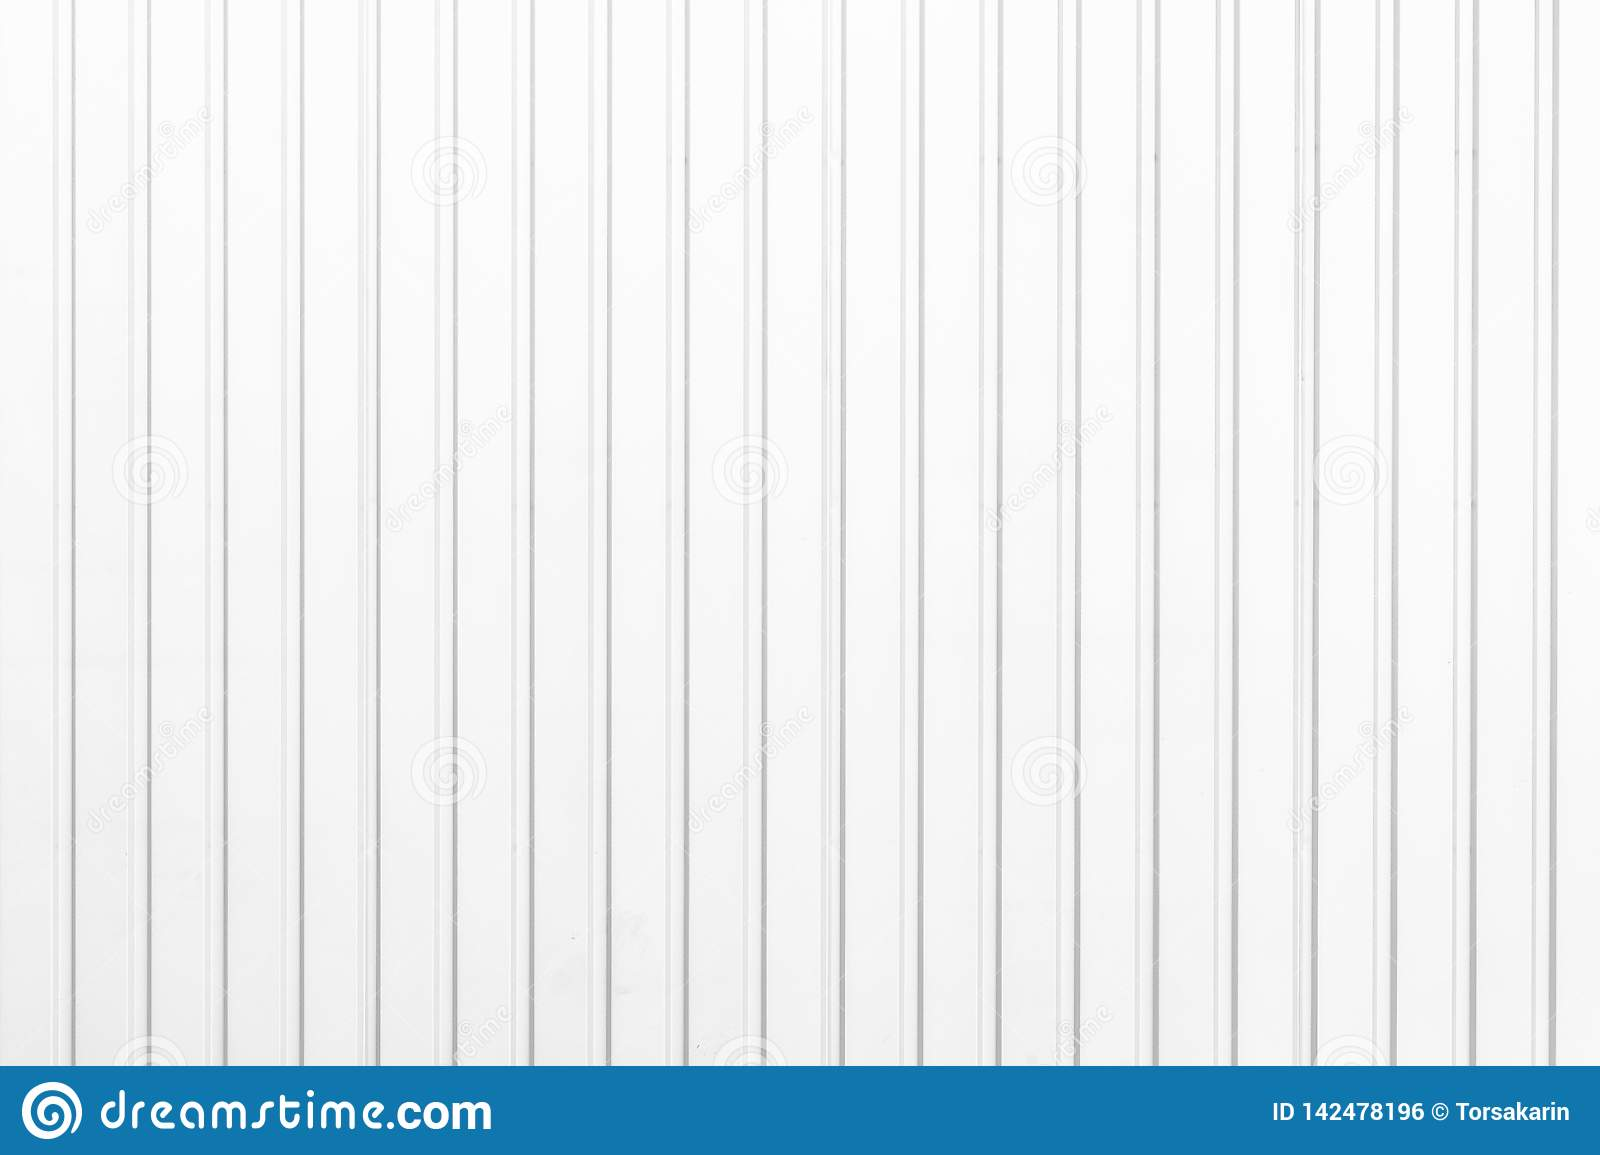 Aluminum Fence Panels Painted Stock Photo Image Of Black Abstract 142478196